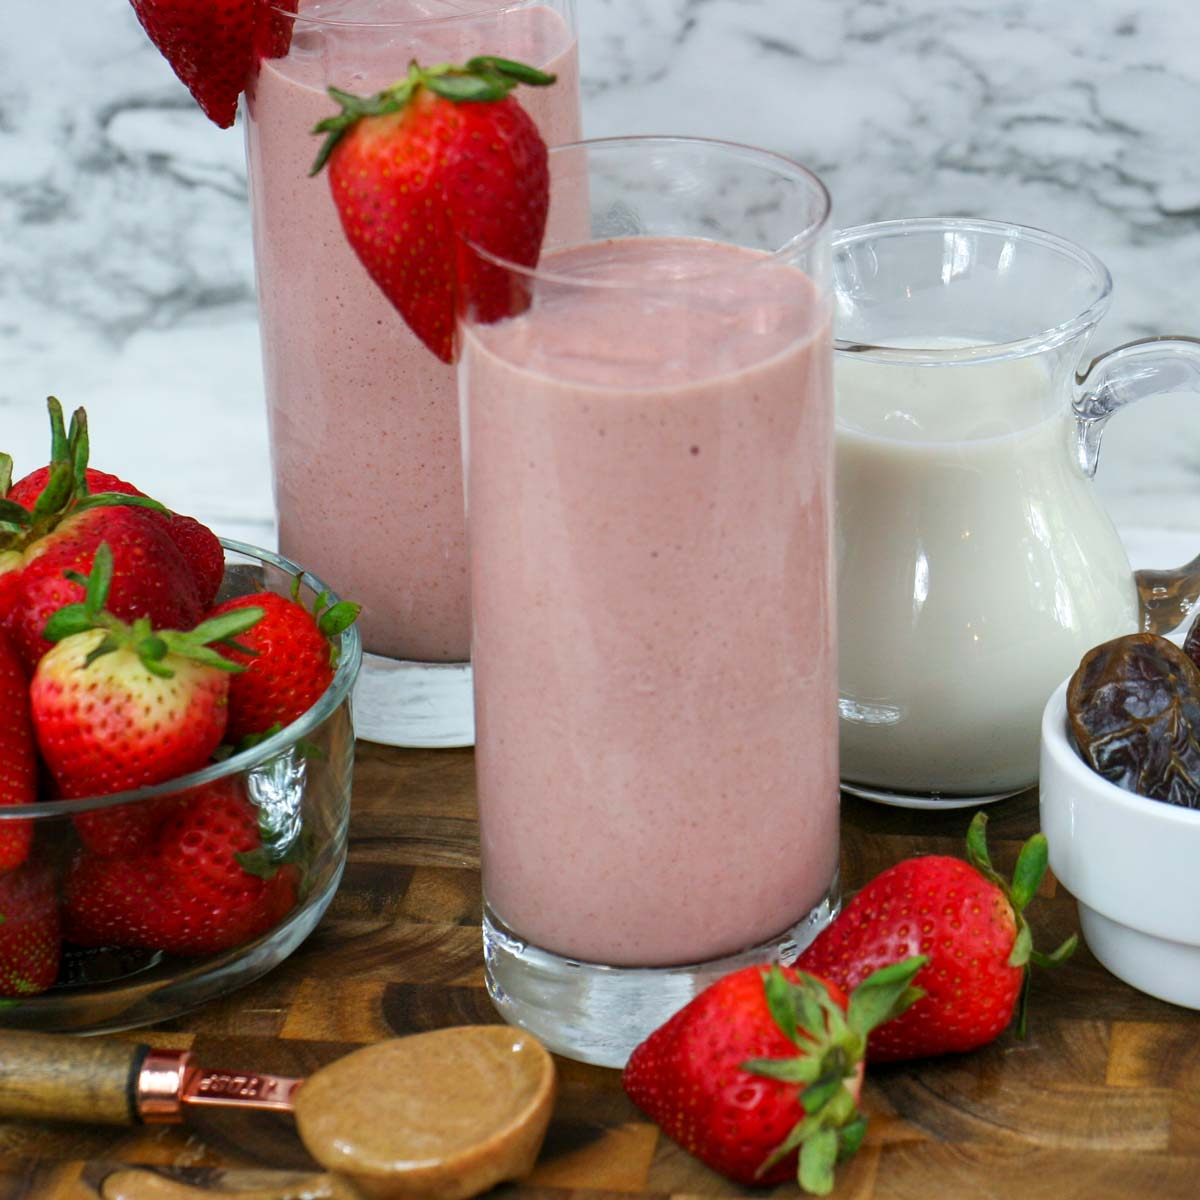 Healthy Frozen Strawberry Smoothie (without yogurt or banana)